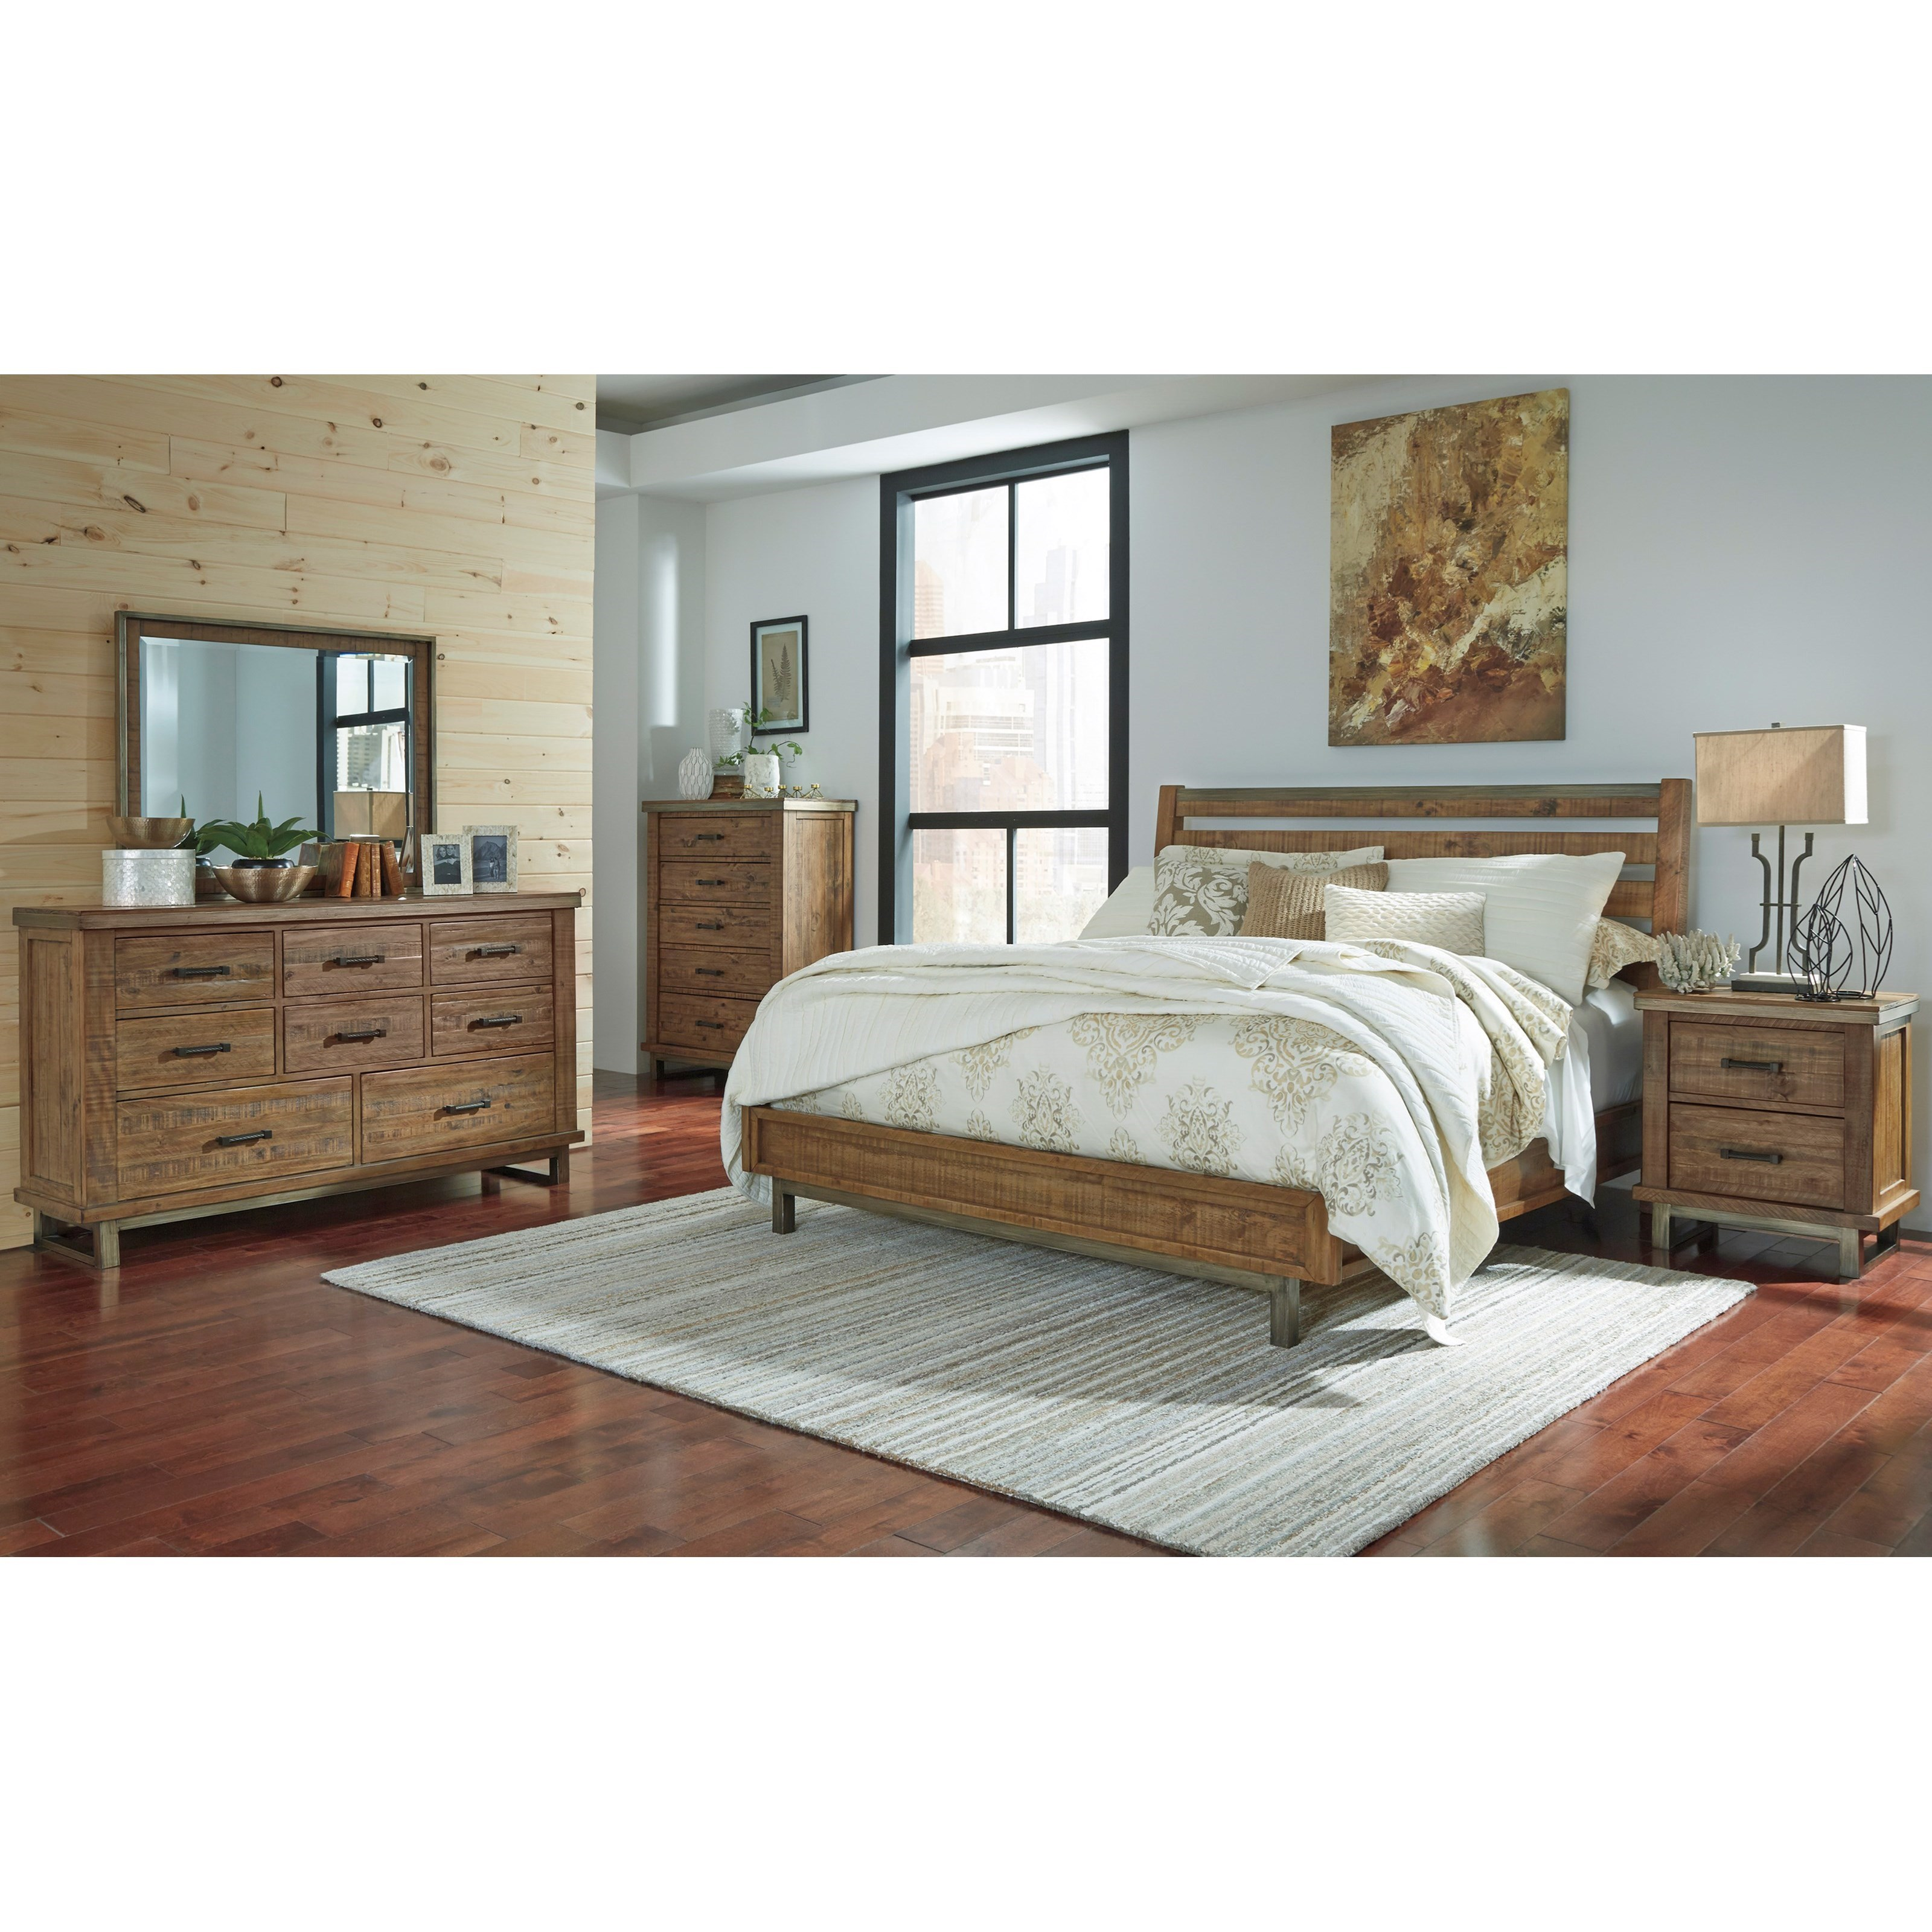 Signature Design by Ashley Dondie California King Bedroom Group - Item Number: B663 CK Bedroom Group 1